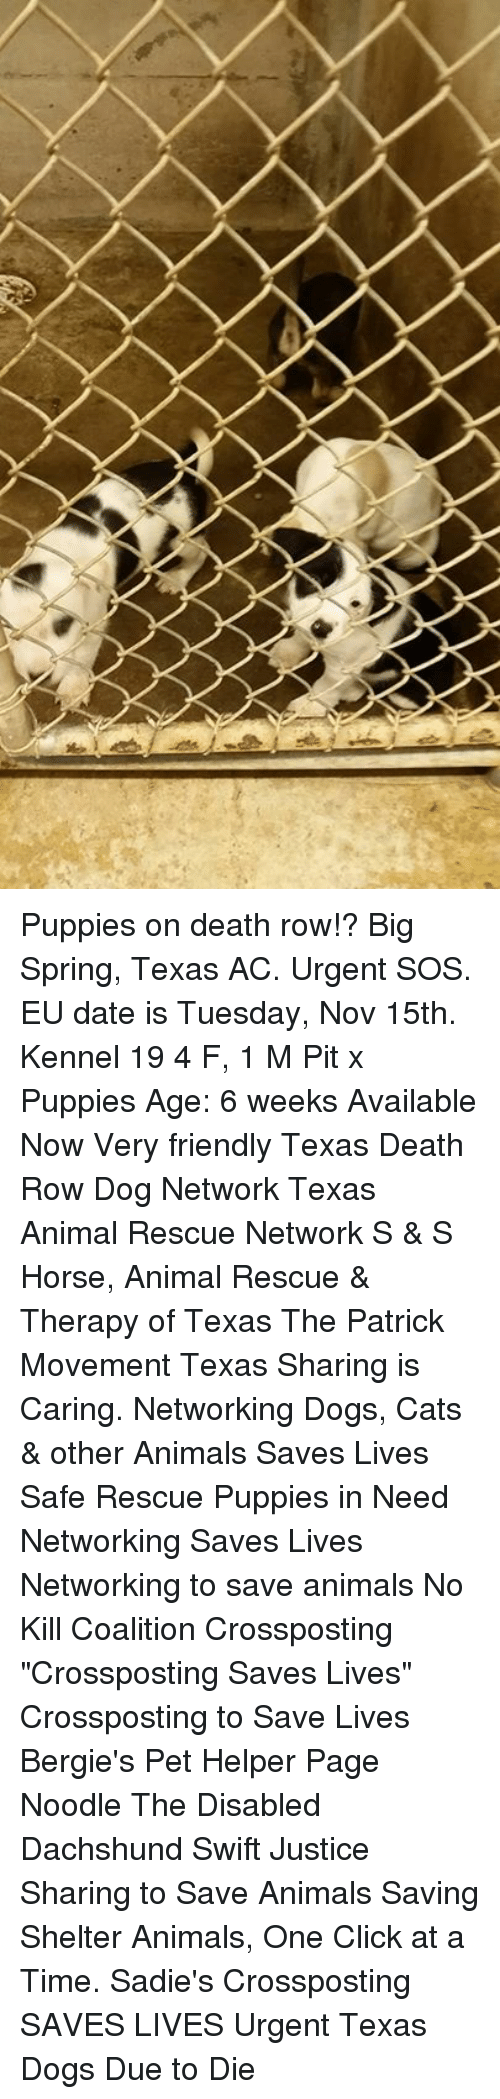 Https I When You Send A Risky Text Get That 4778871 Damn Love Indonesia New Kaos Pria Red Hd White Merah L Puppies On Death Row Big Spring Texas Ac Urgent Sos 6662937